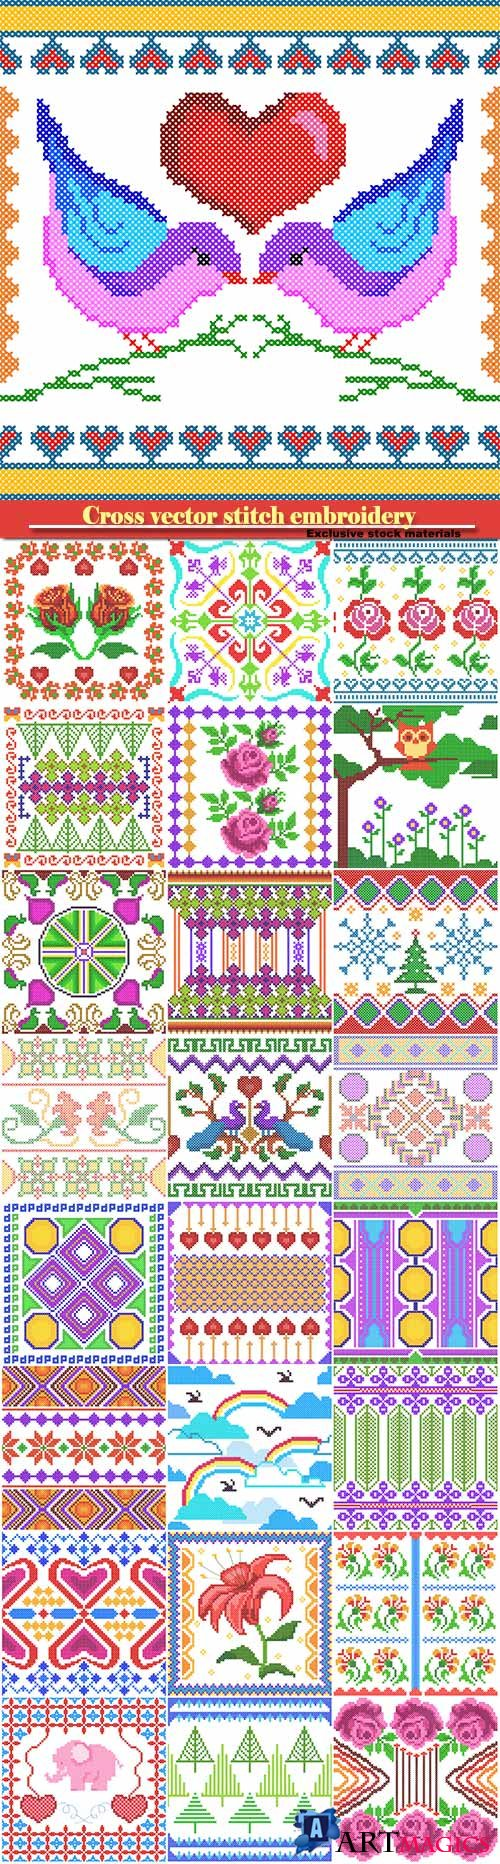 Cross vector stitch embroidery, floral design for seamless pattern texture